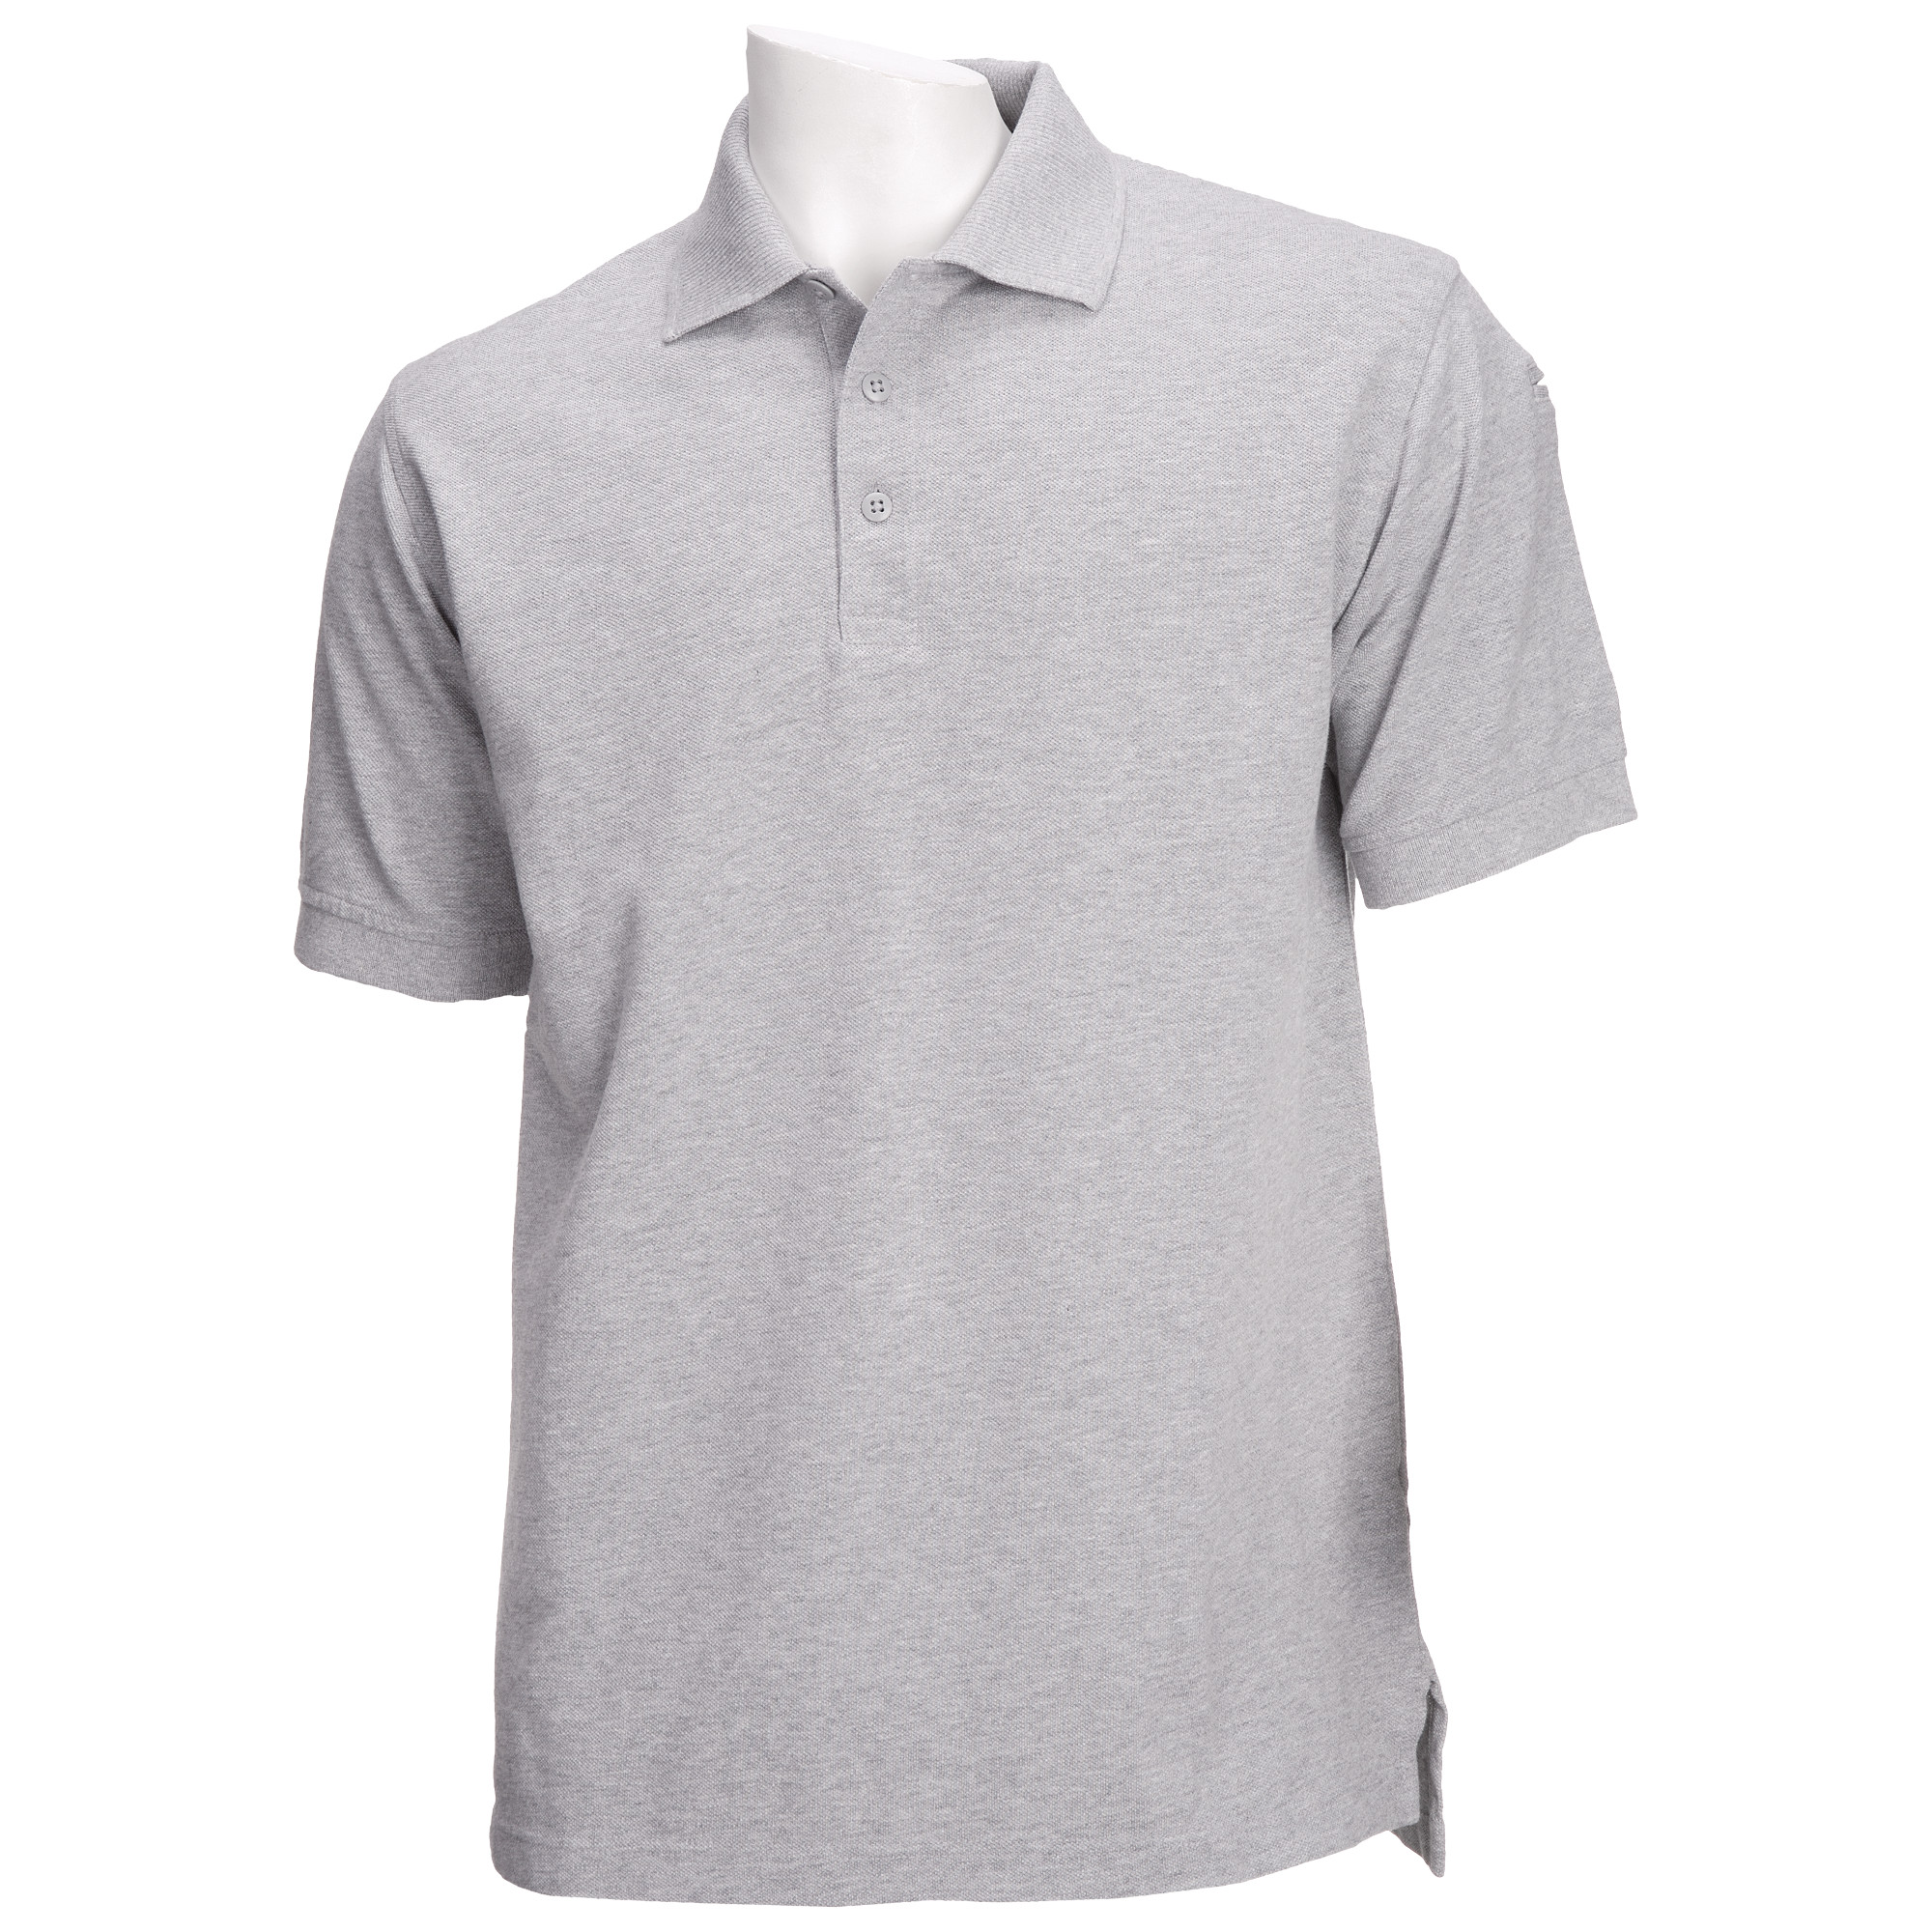 5.11 Mens Short Sleeve Polo TALL 41060T